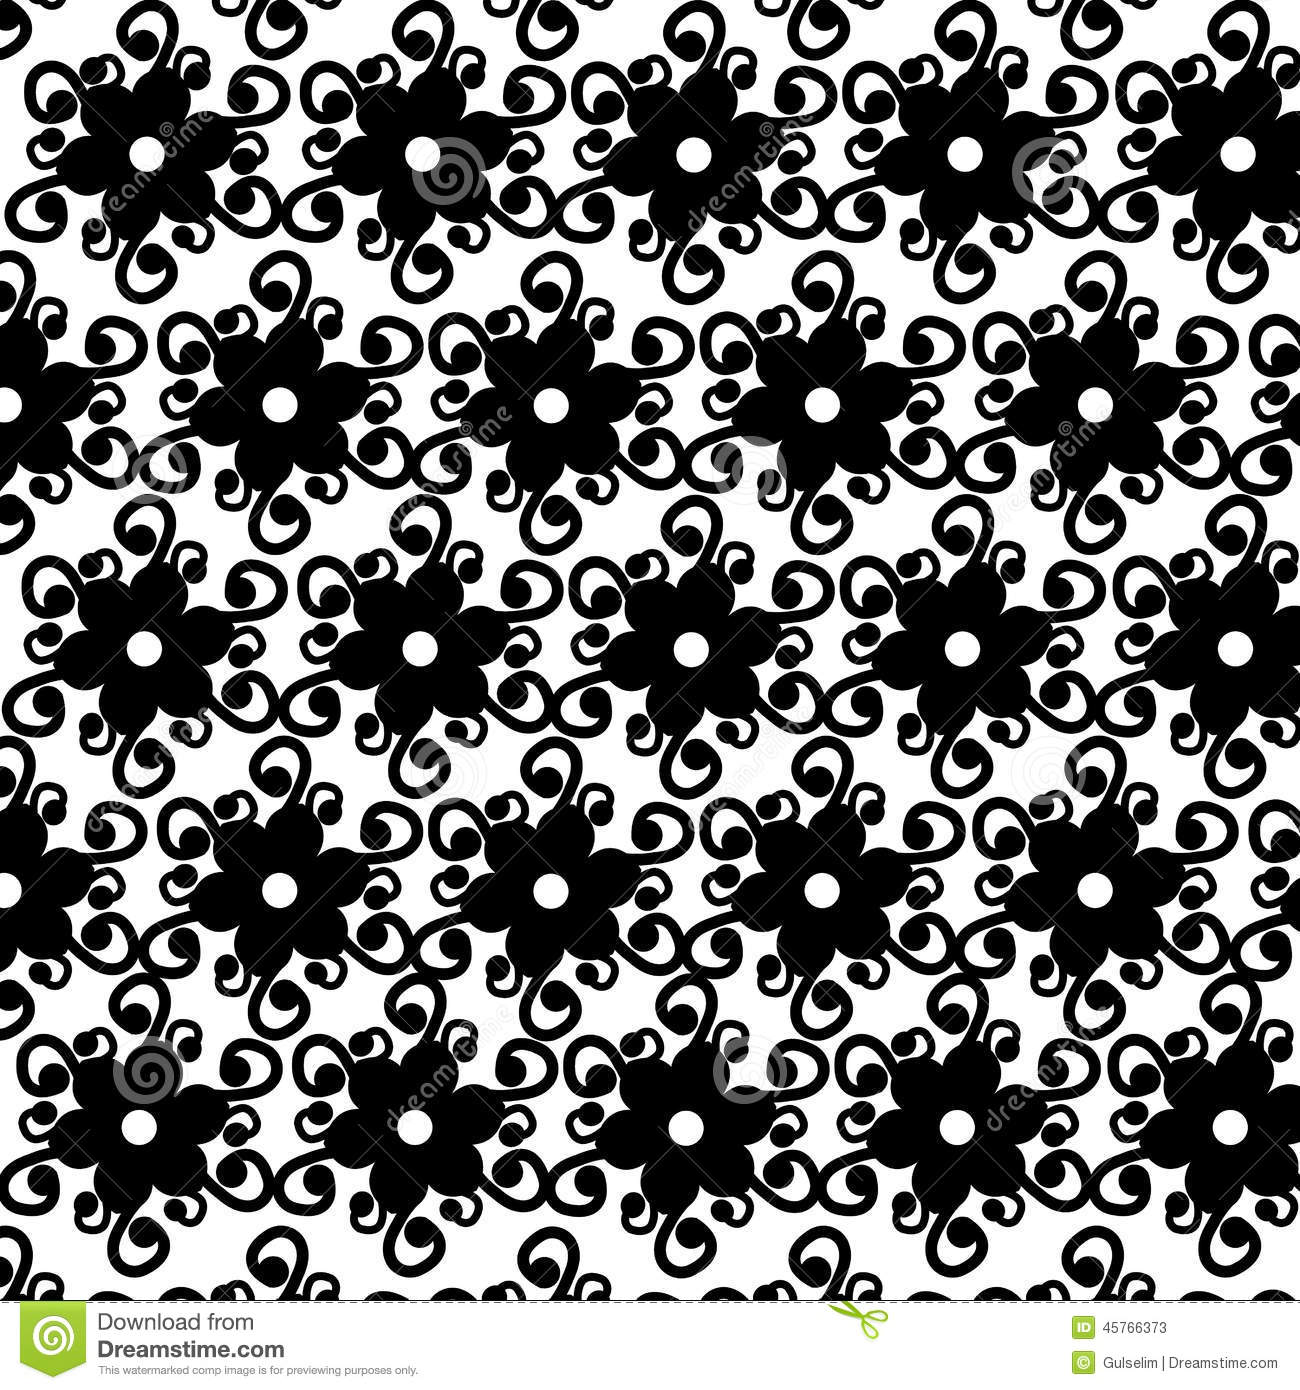 Black and white ornaments - Background Black Ornaments Pattern Seamless Vector White